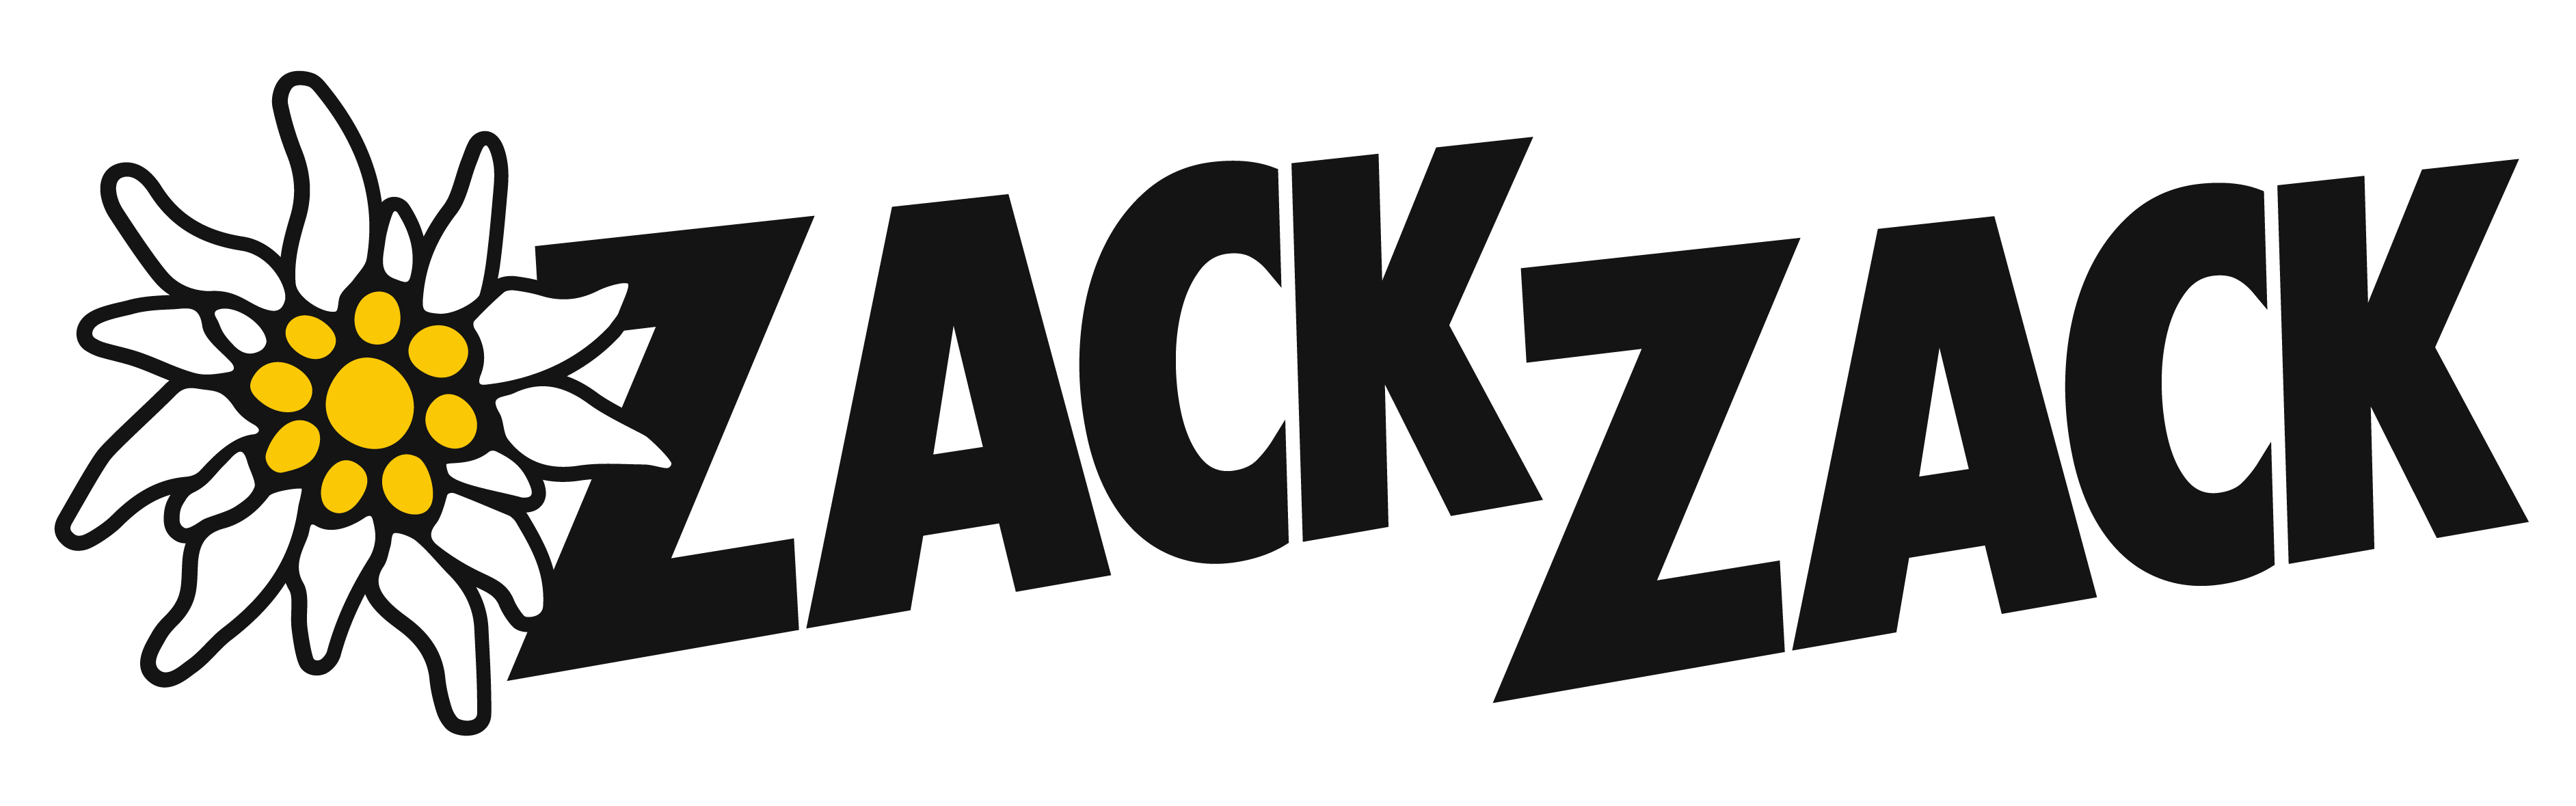 zackzack.at